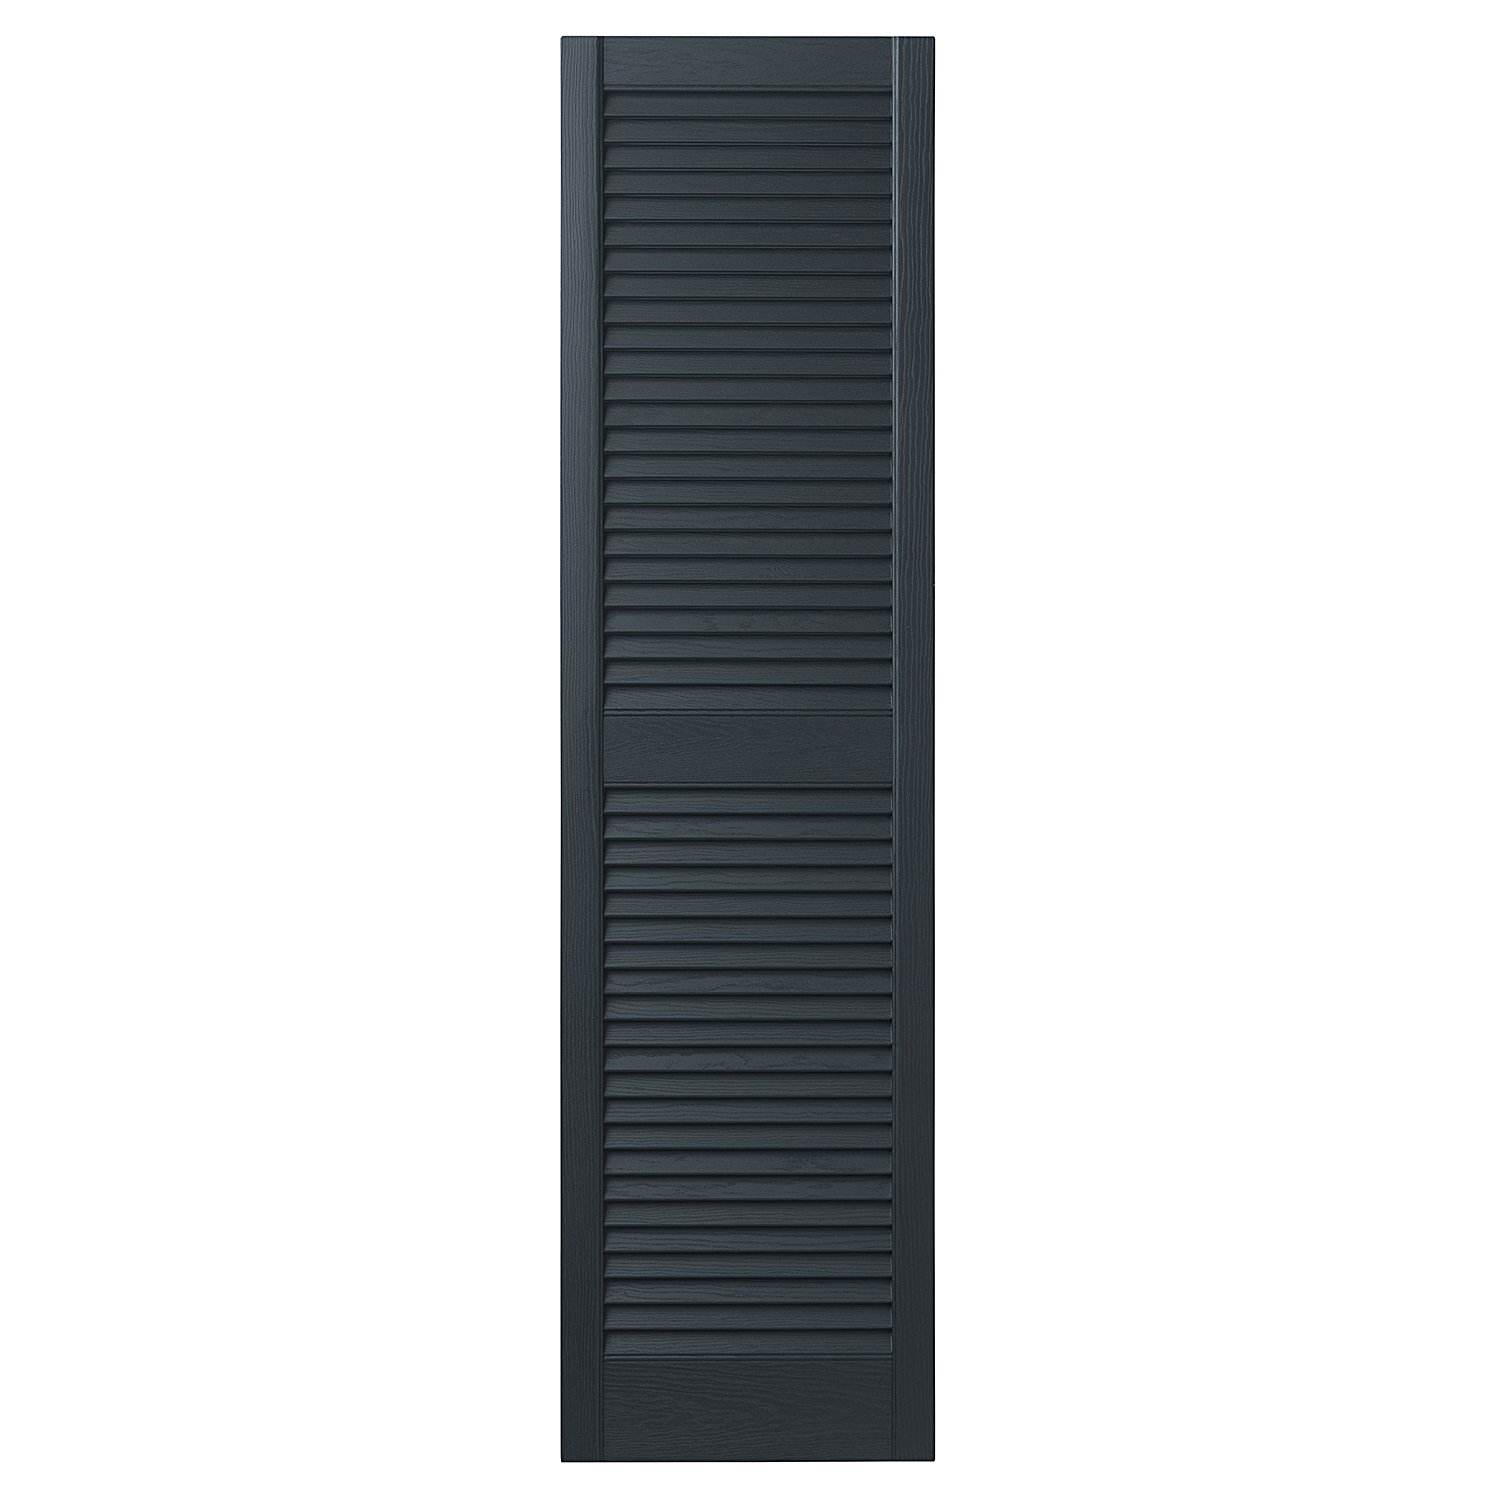 Ply Gem Shutters and Accents VINLV1567 56 Louvered